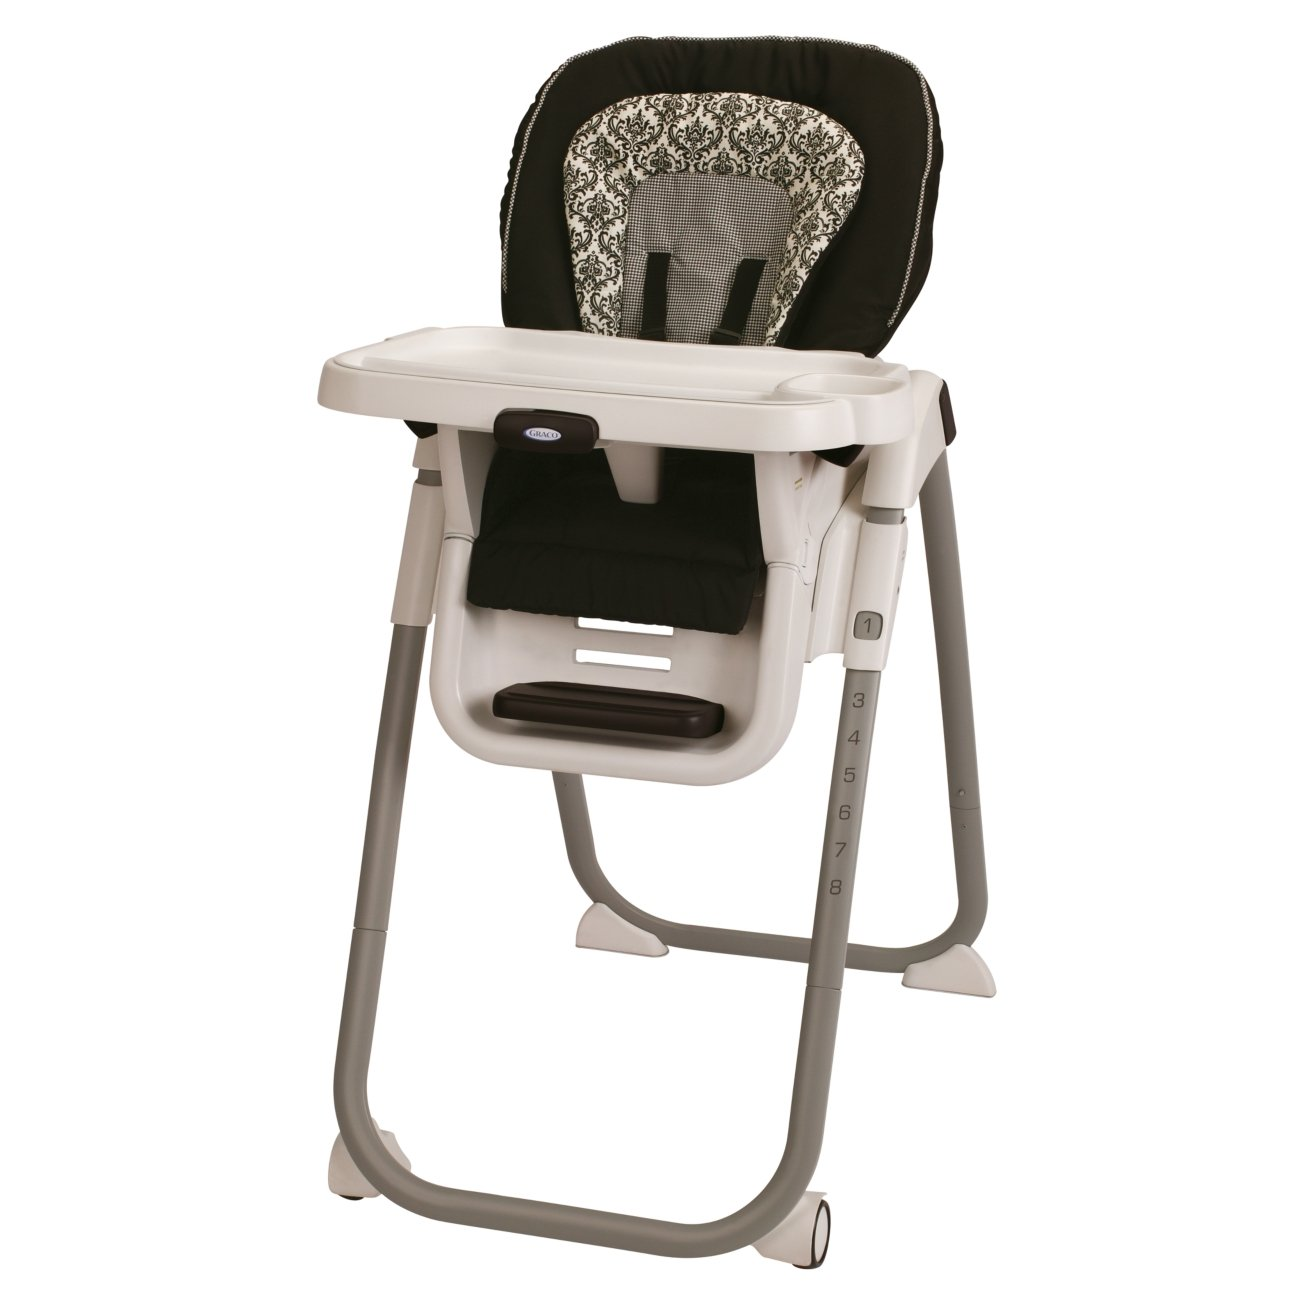 graco duodiner lx high chair baby gear and accessories